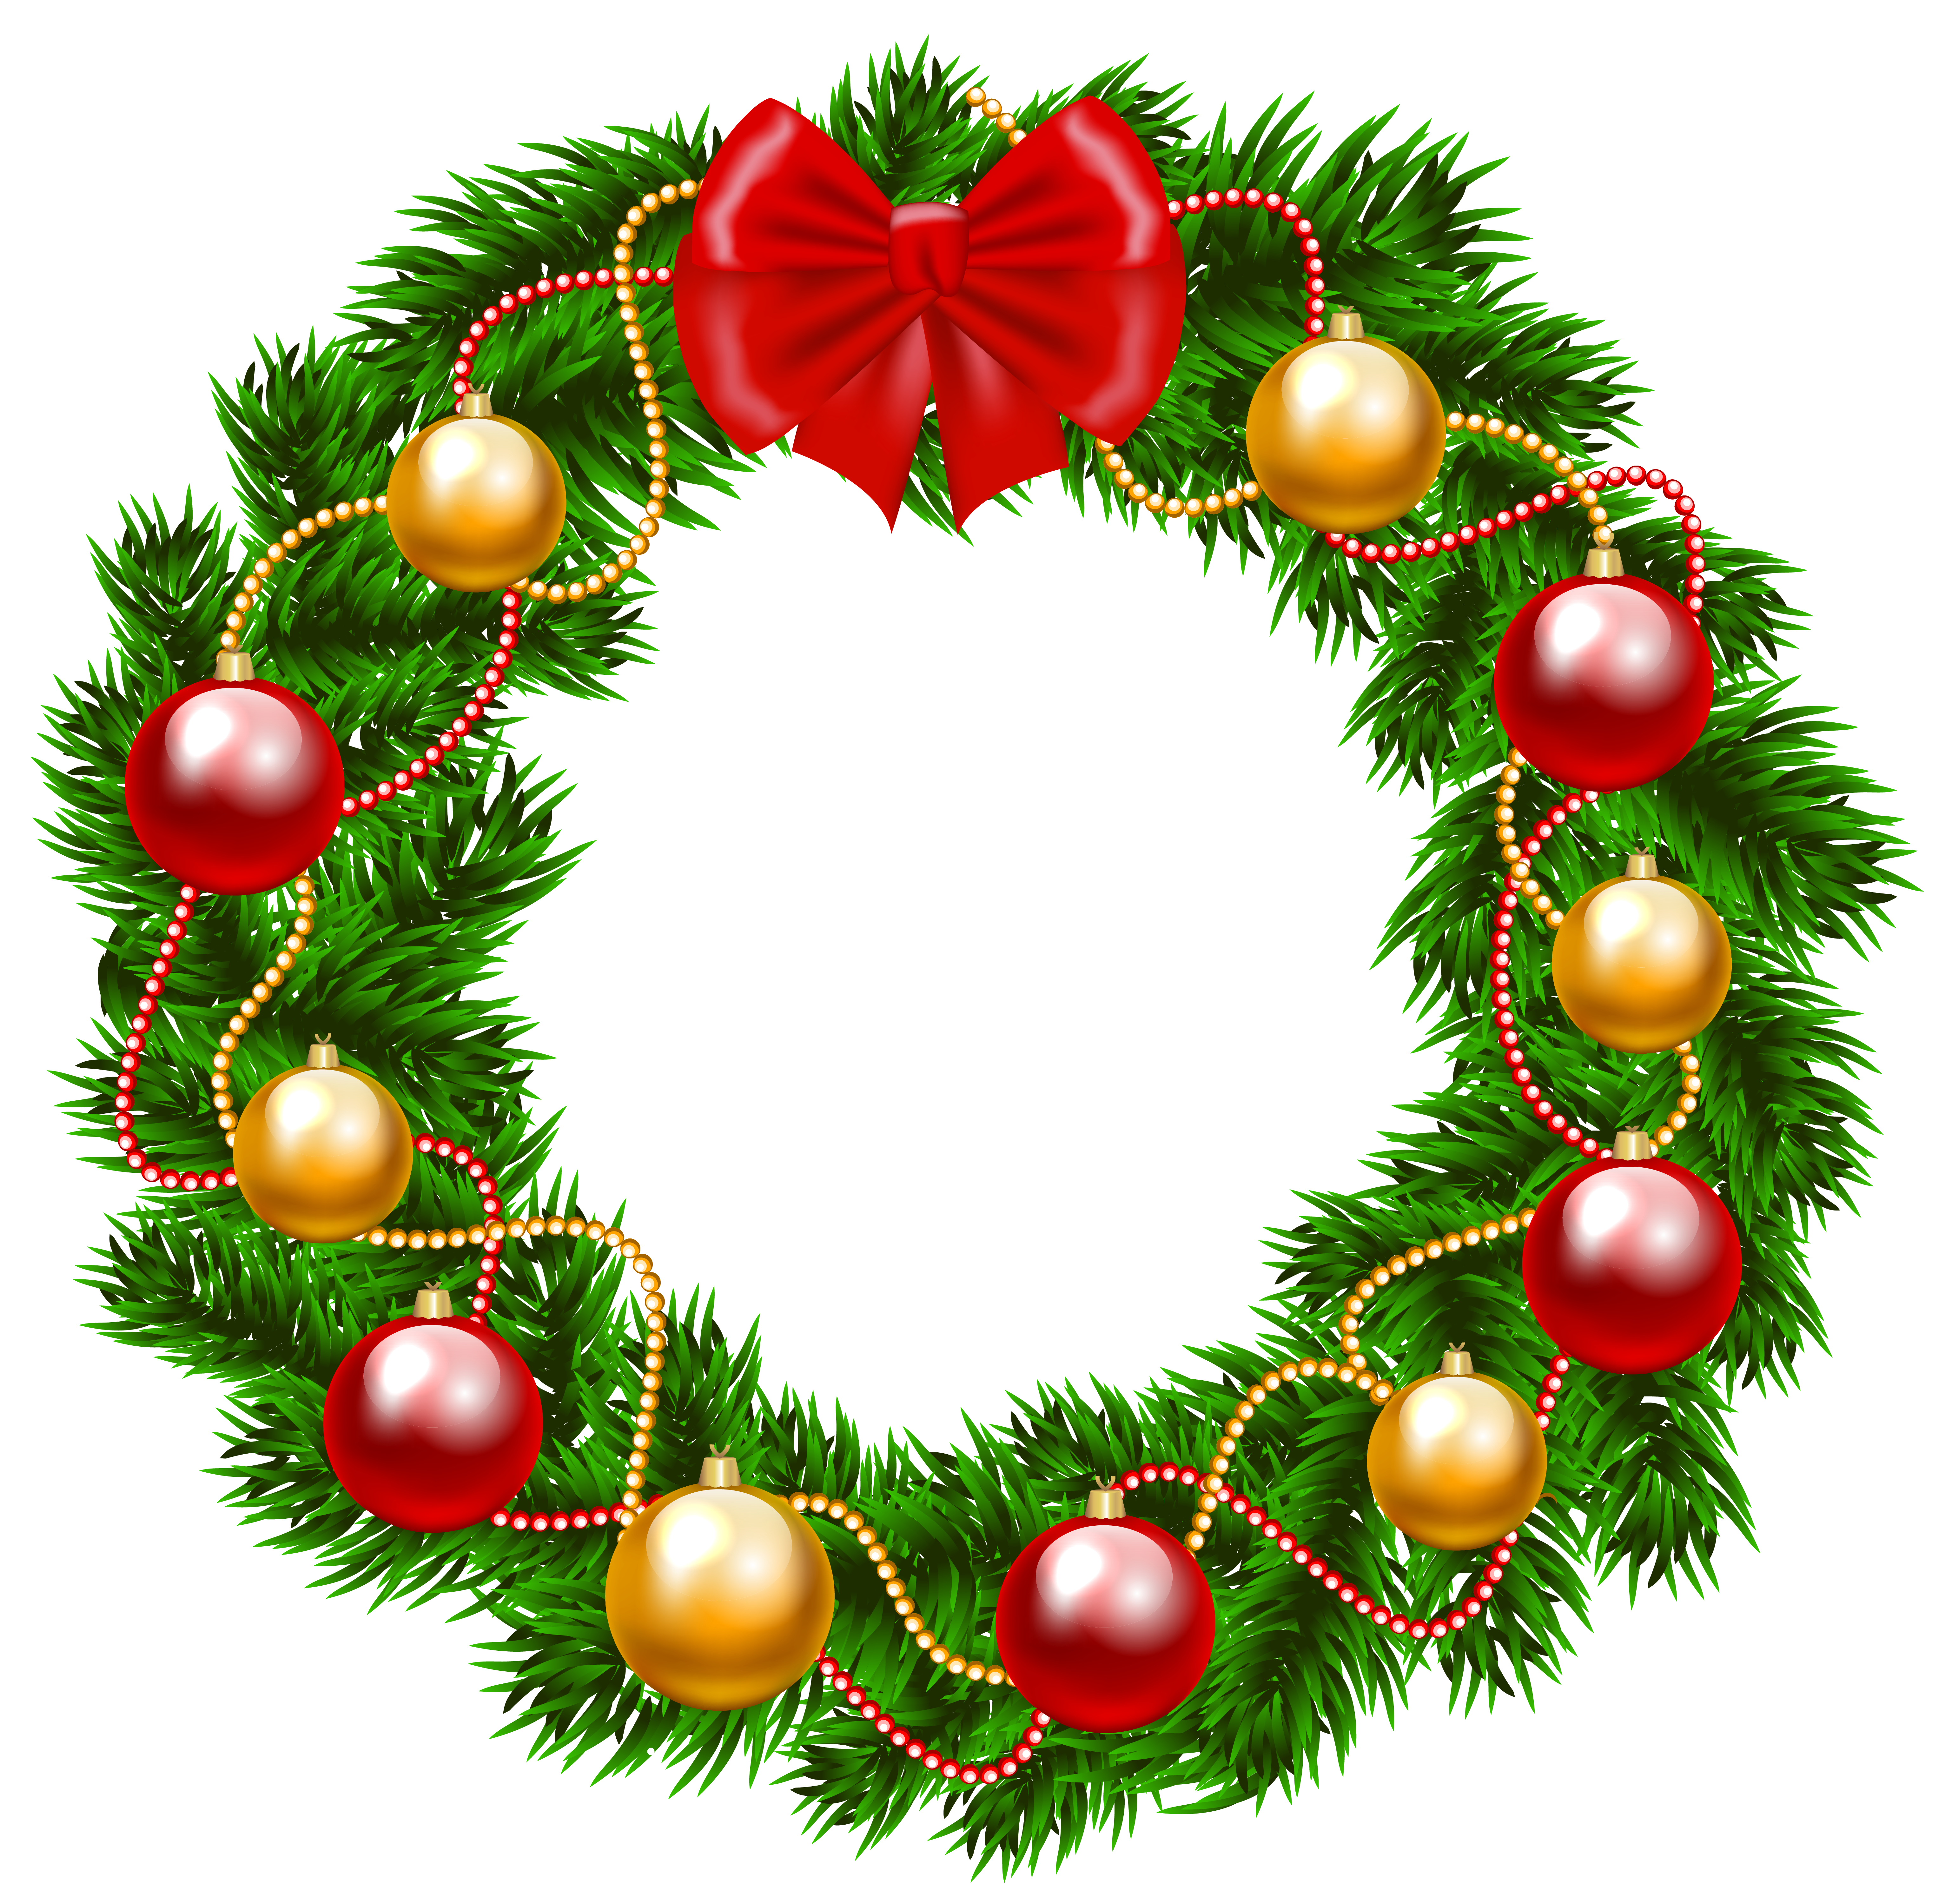 Christmas wreath border png. Clipart image gallery yopriceville